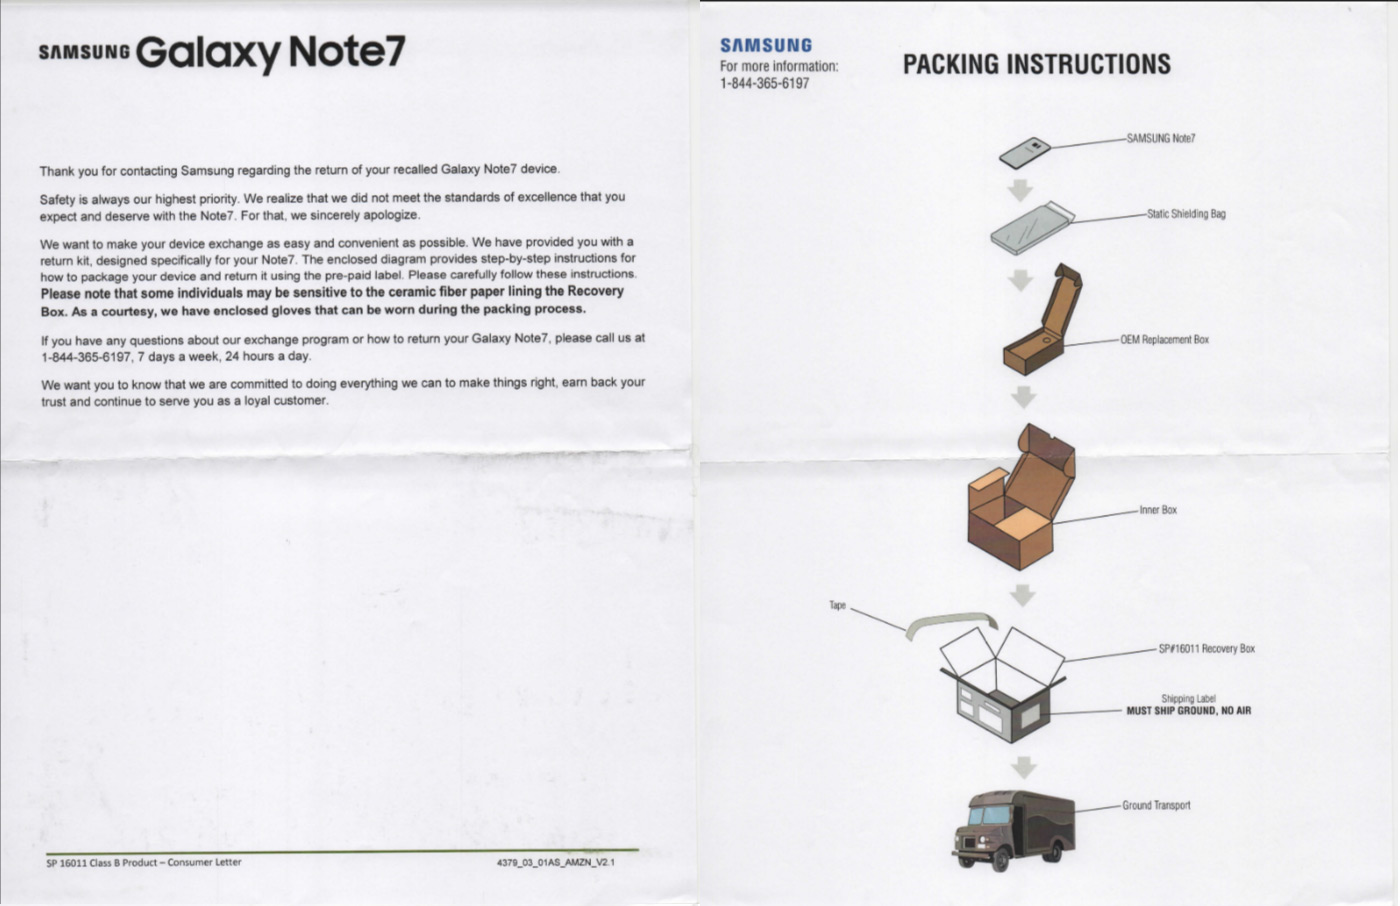 samsung-note7-return-kit-instructions